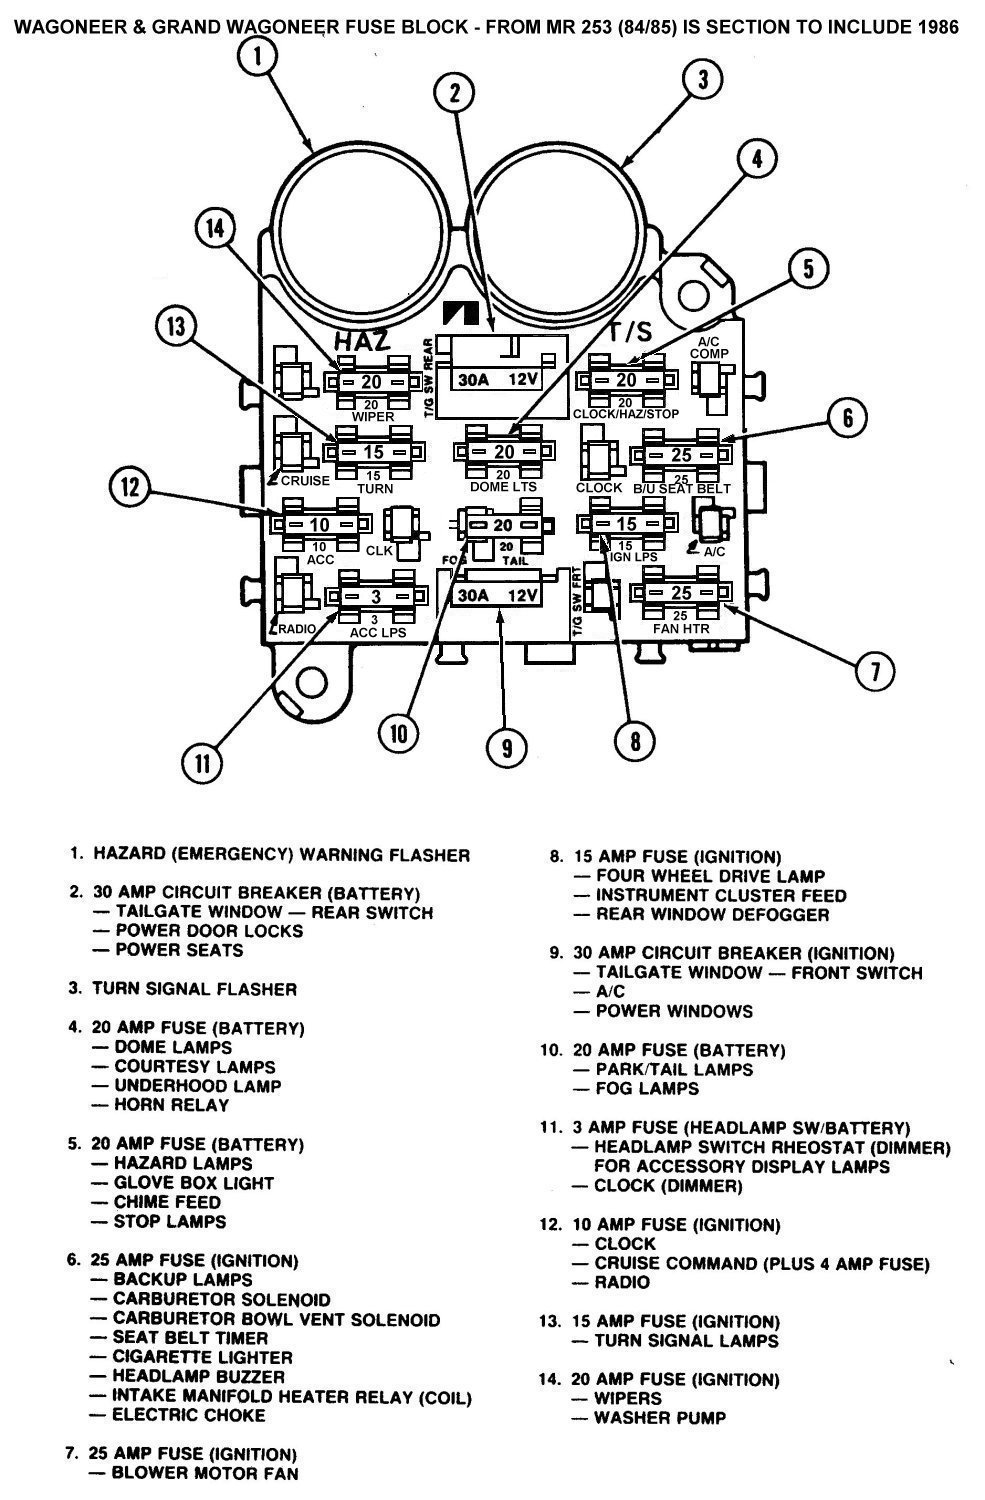 84 porsche 944 fuse box diagram wiring diagram and engine diagram 1983 porsche 944 dme relay [ 985 x 1500 Pixel ]